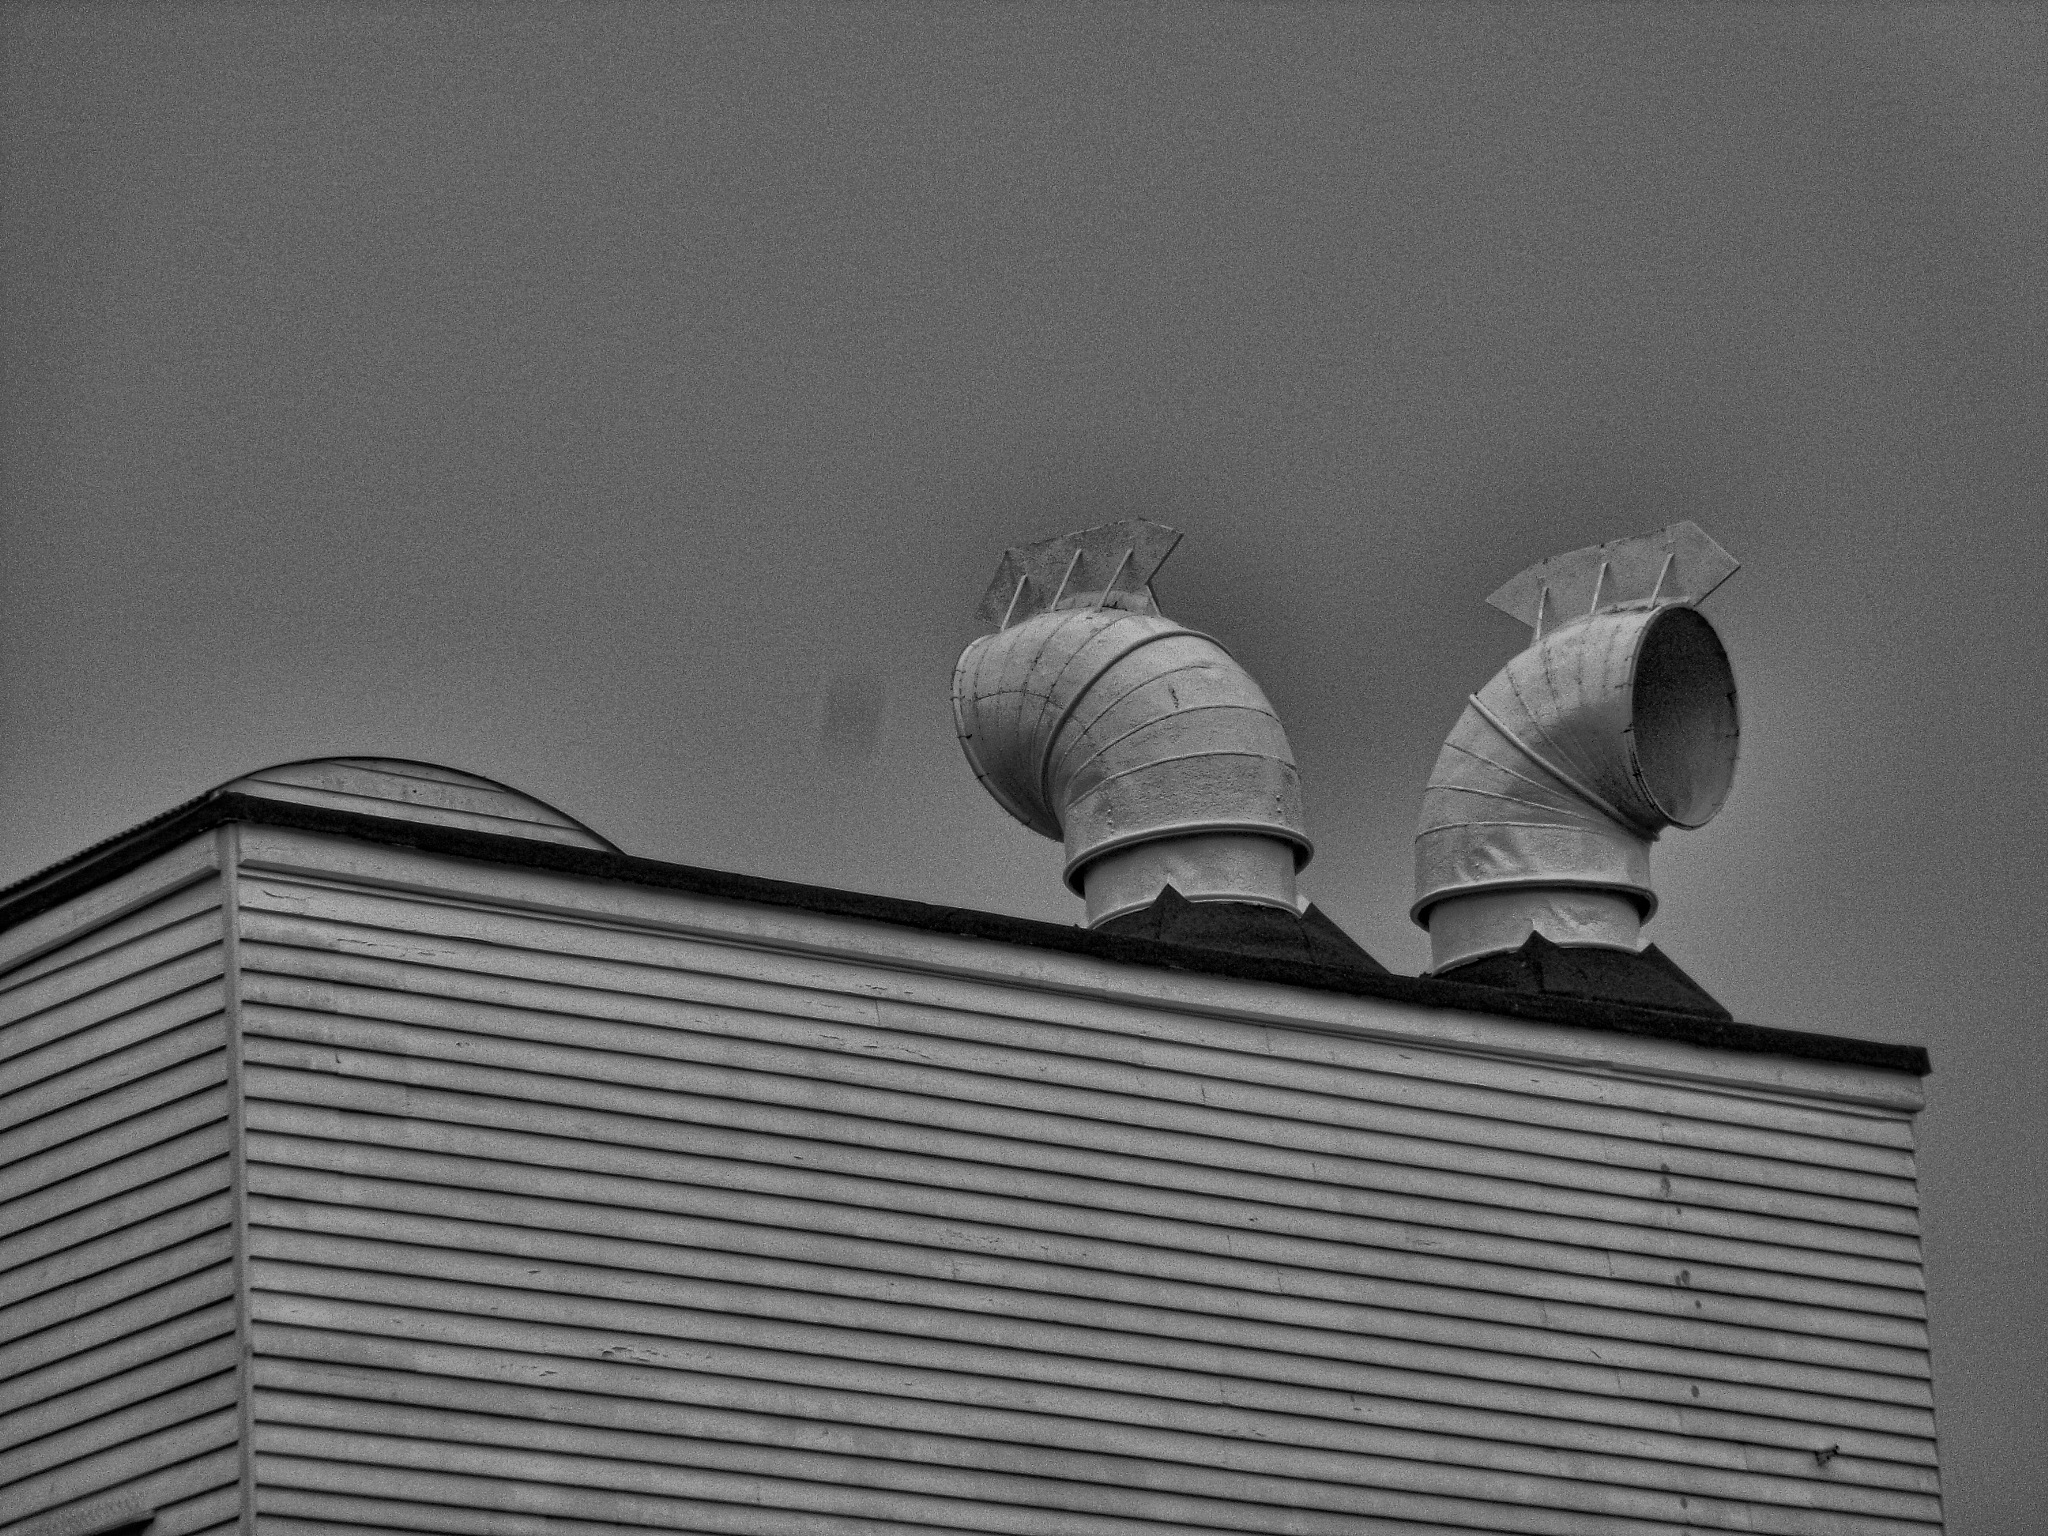 The Vents by Simon Hill